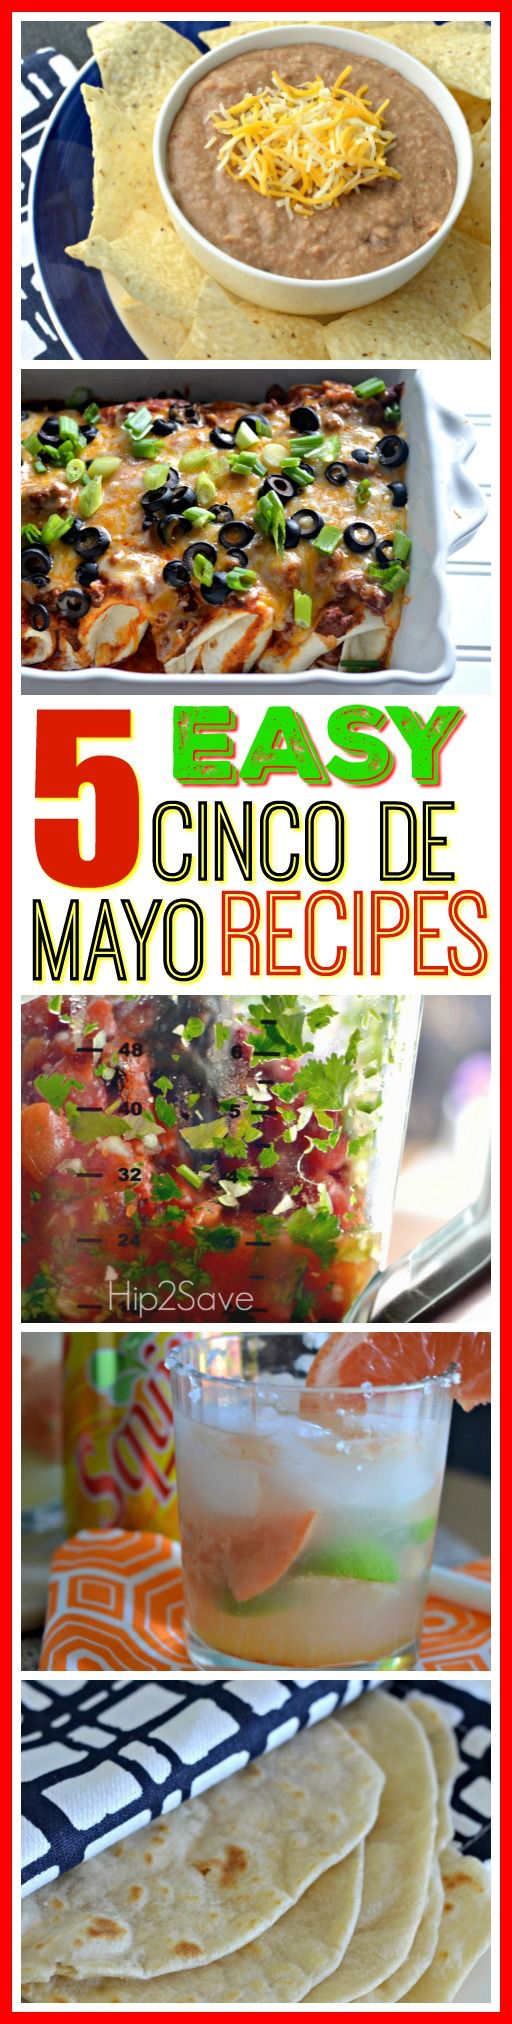 If you're looking to create a Cinco de Mayo Menu, check out these delicious and easy recipes!